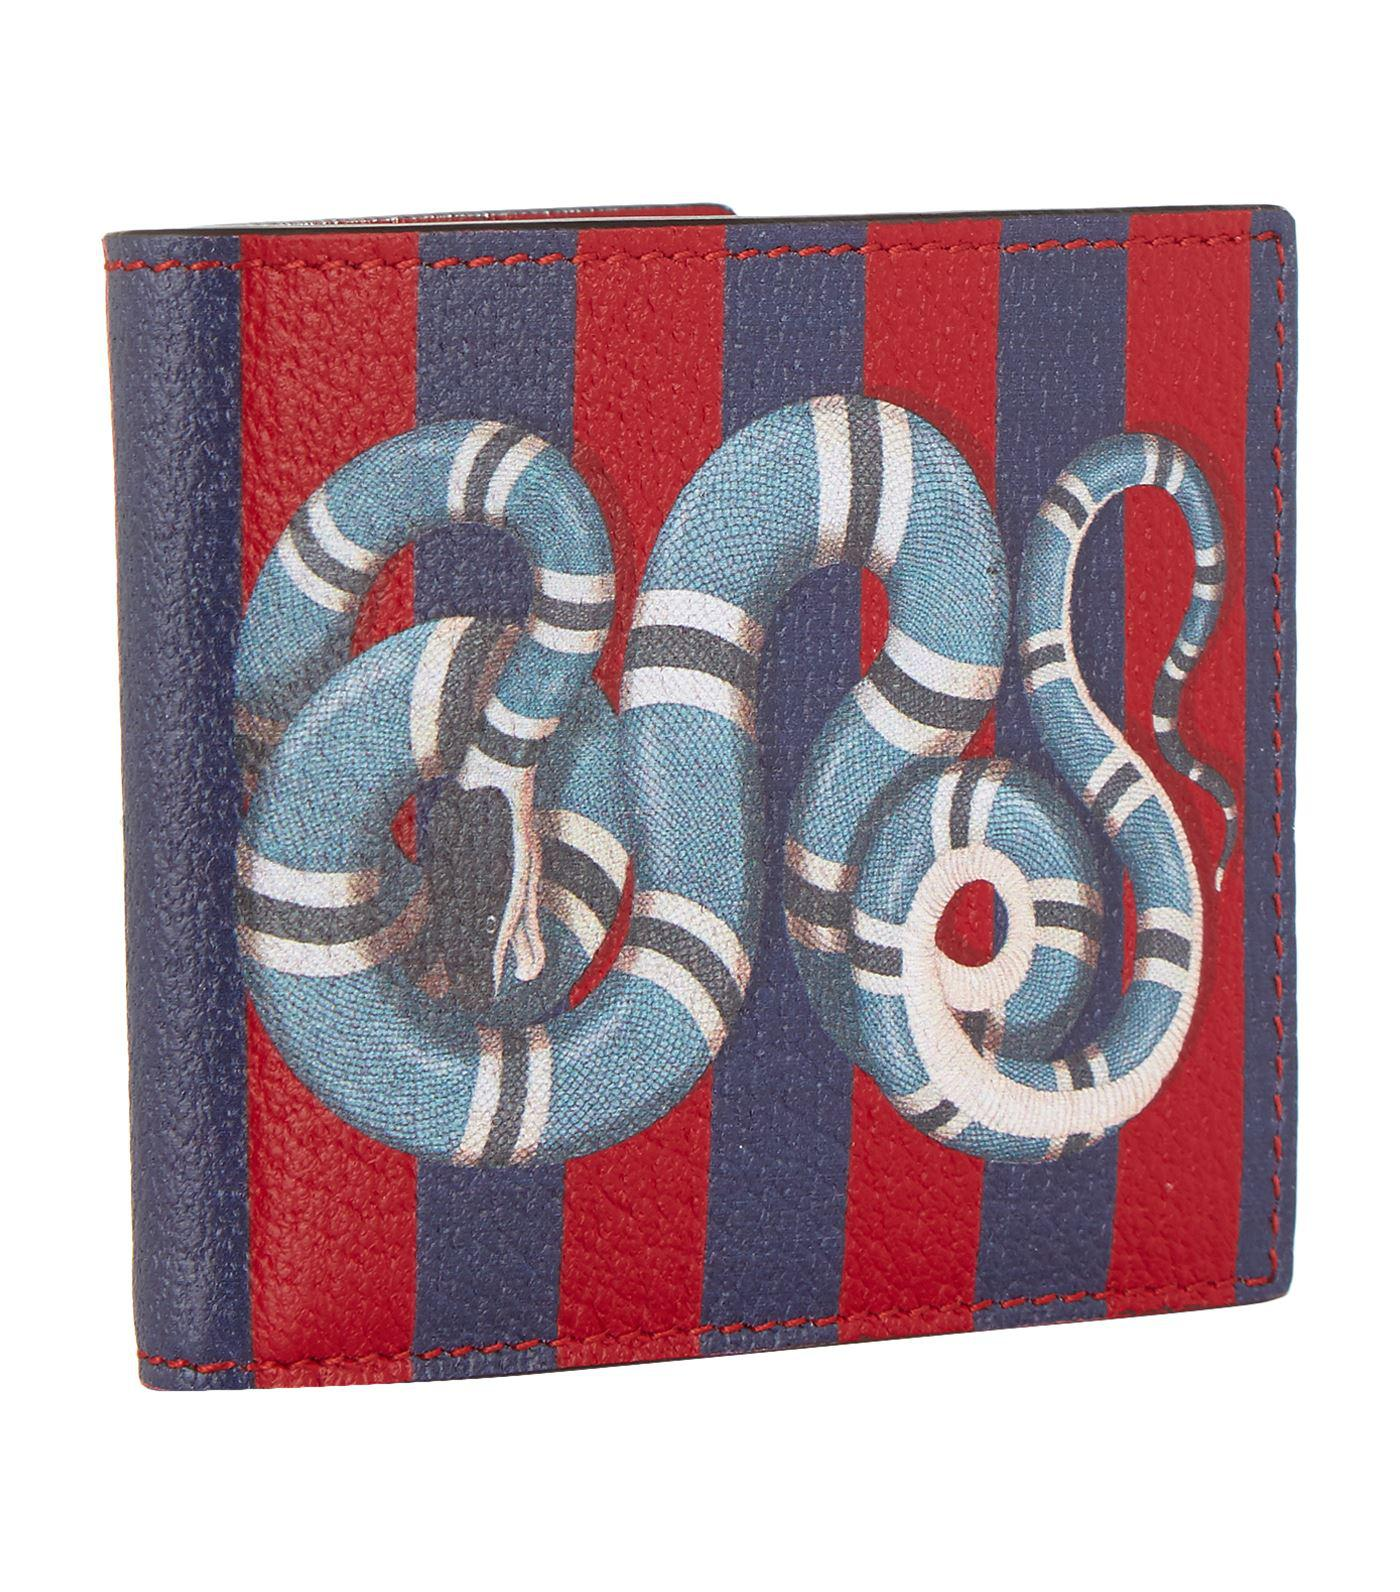 f51c4bc7cb41ba Gucci King Snake Bifold Wallet, Red, One Size in Red for Men - Lyst